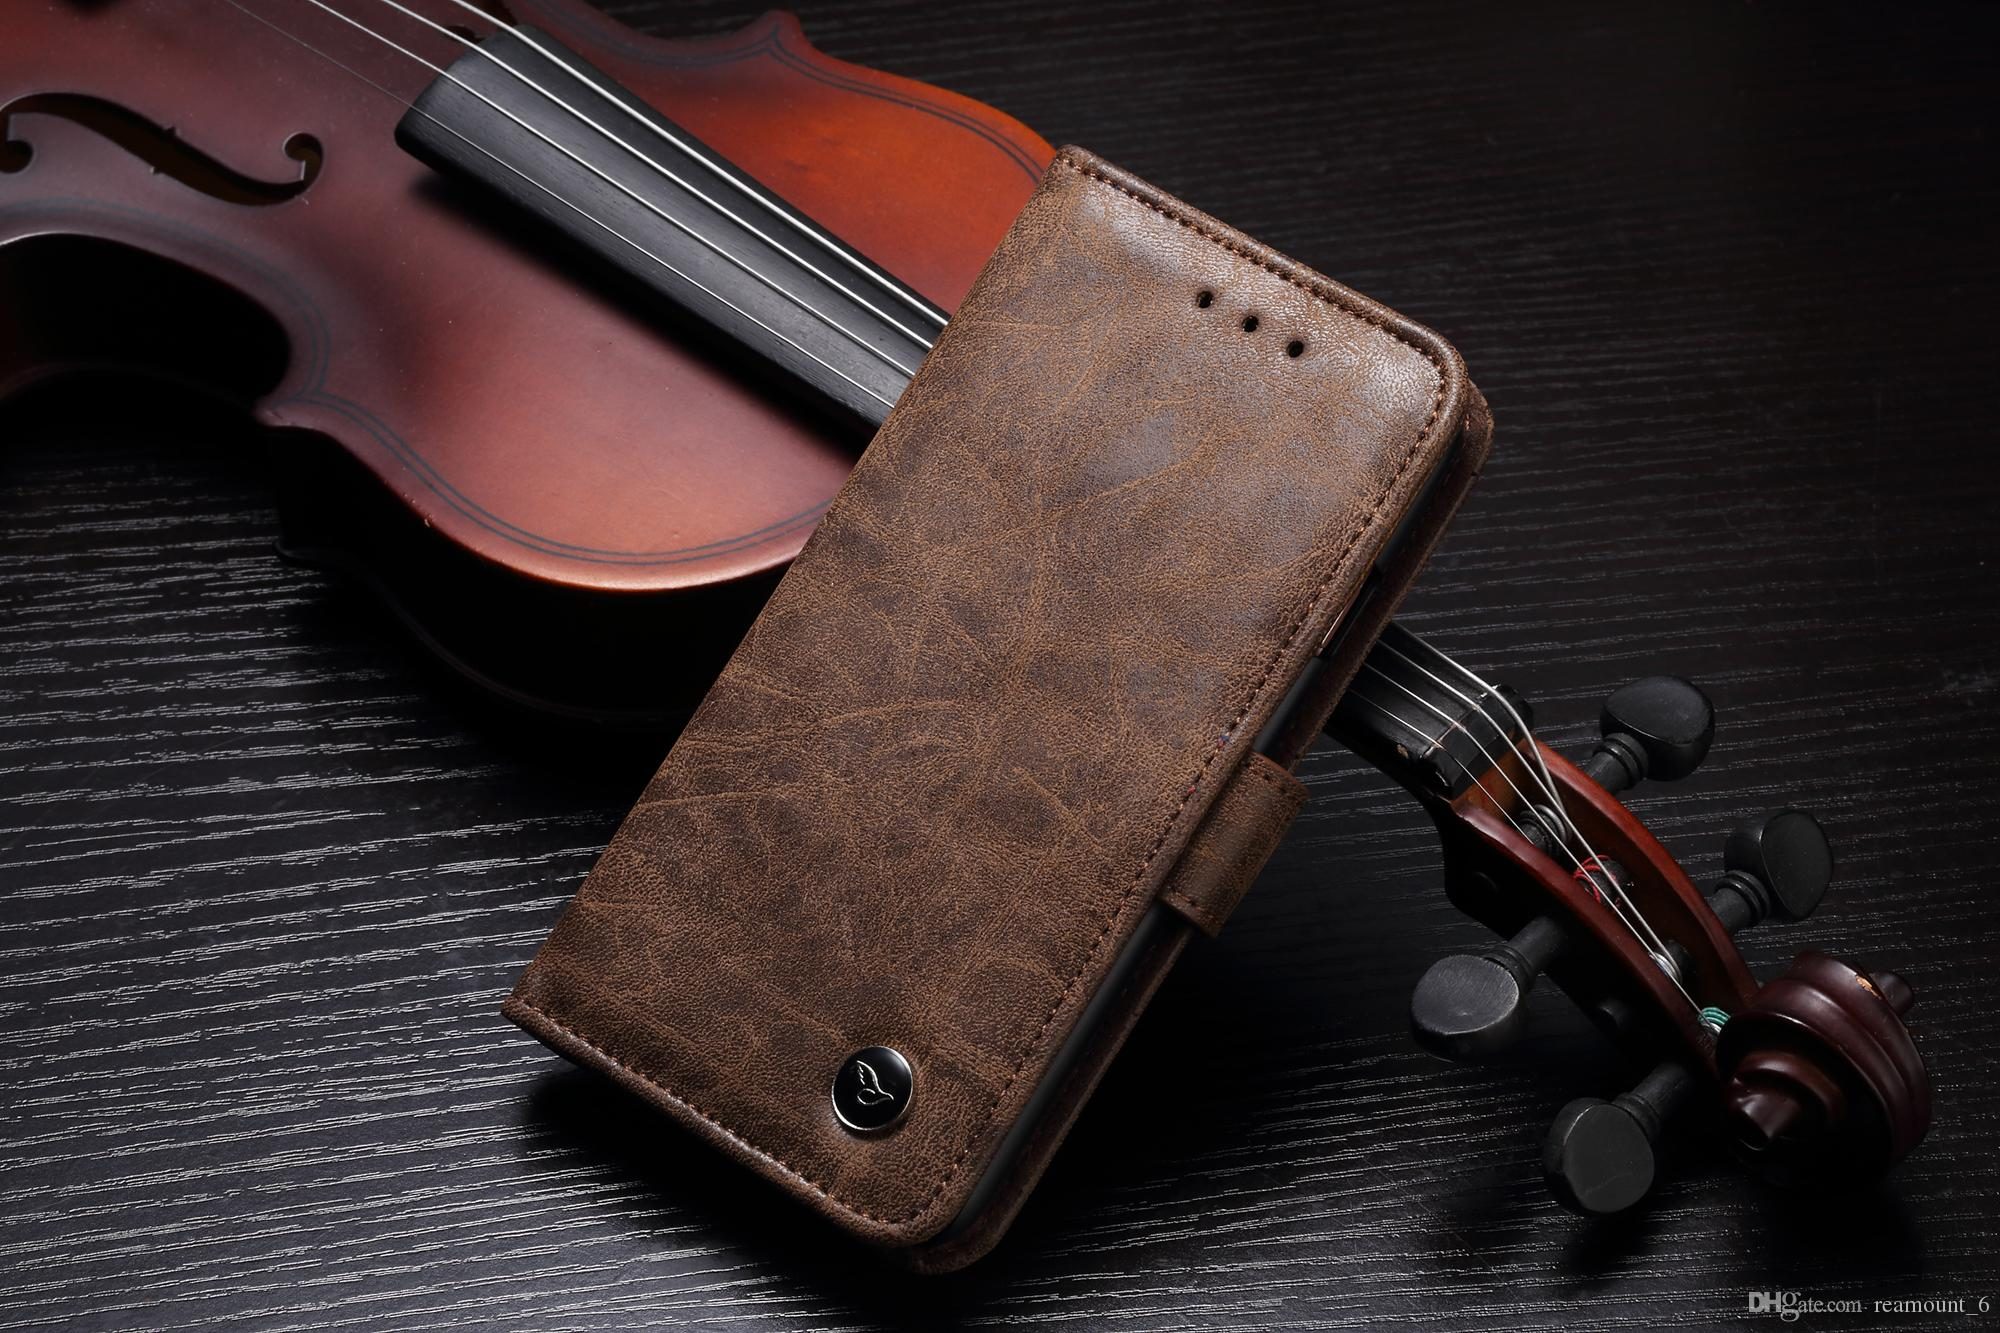 Retail 5 pcs Retro Leather PC Case for Samsung S8 Plus Card Pocket Cell Phone Protector for iPhone 8 7 Plus Wallet Case